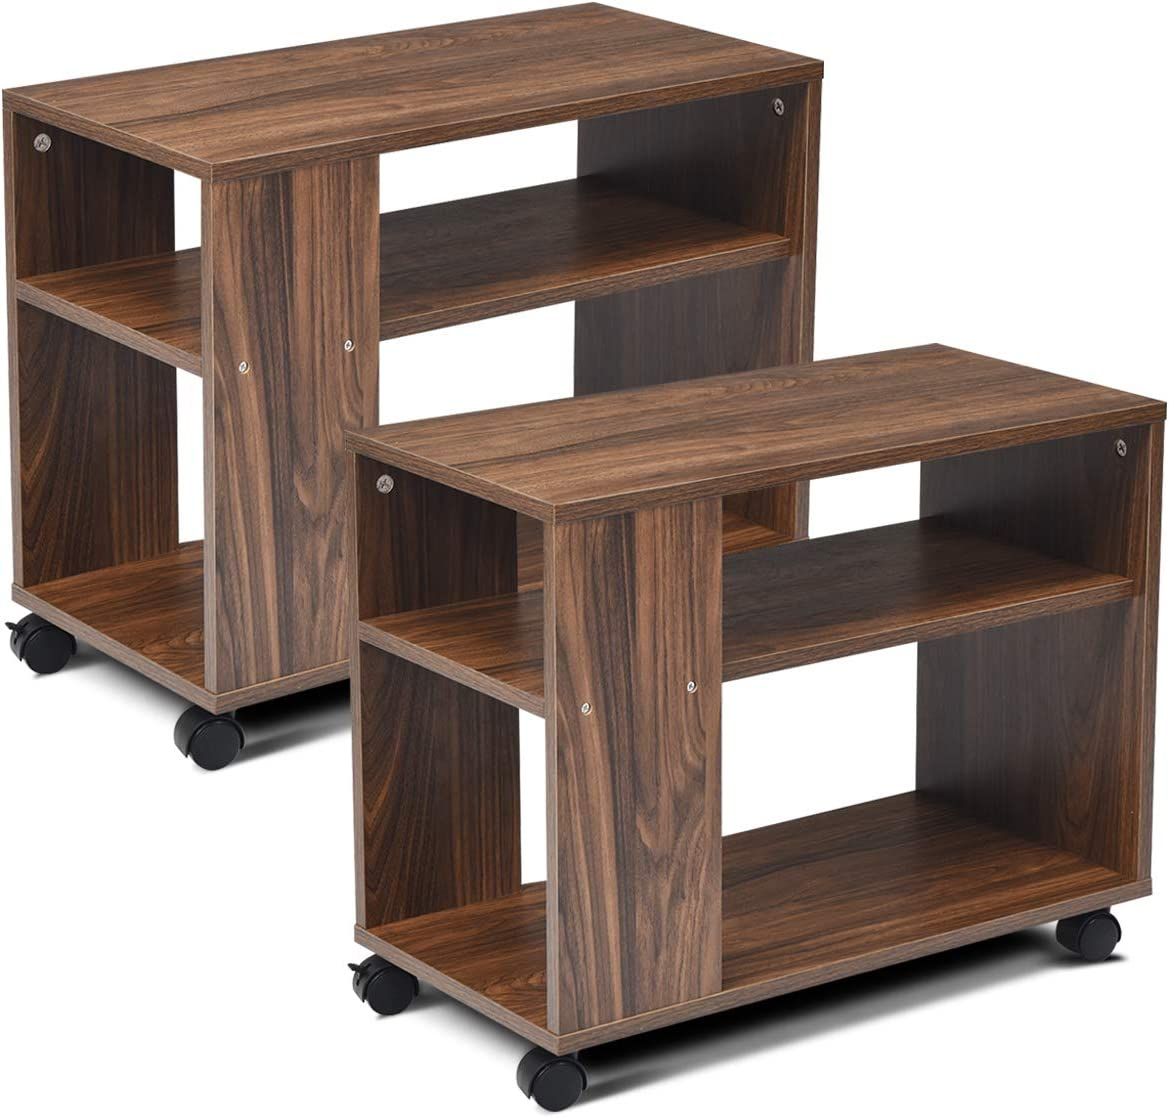 Giantex End Table 3-Tier with Shelves and Wheels for Small Spaces, Stable and Multifunctional Storage Organize Cart for Living Room,Bedroom, Office Nightstand 2, Brown